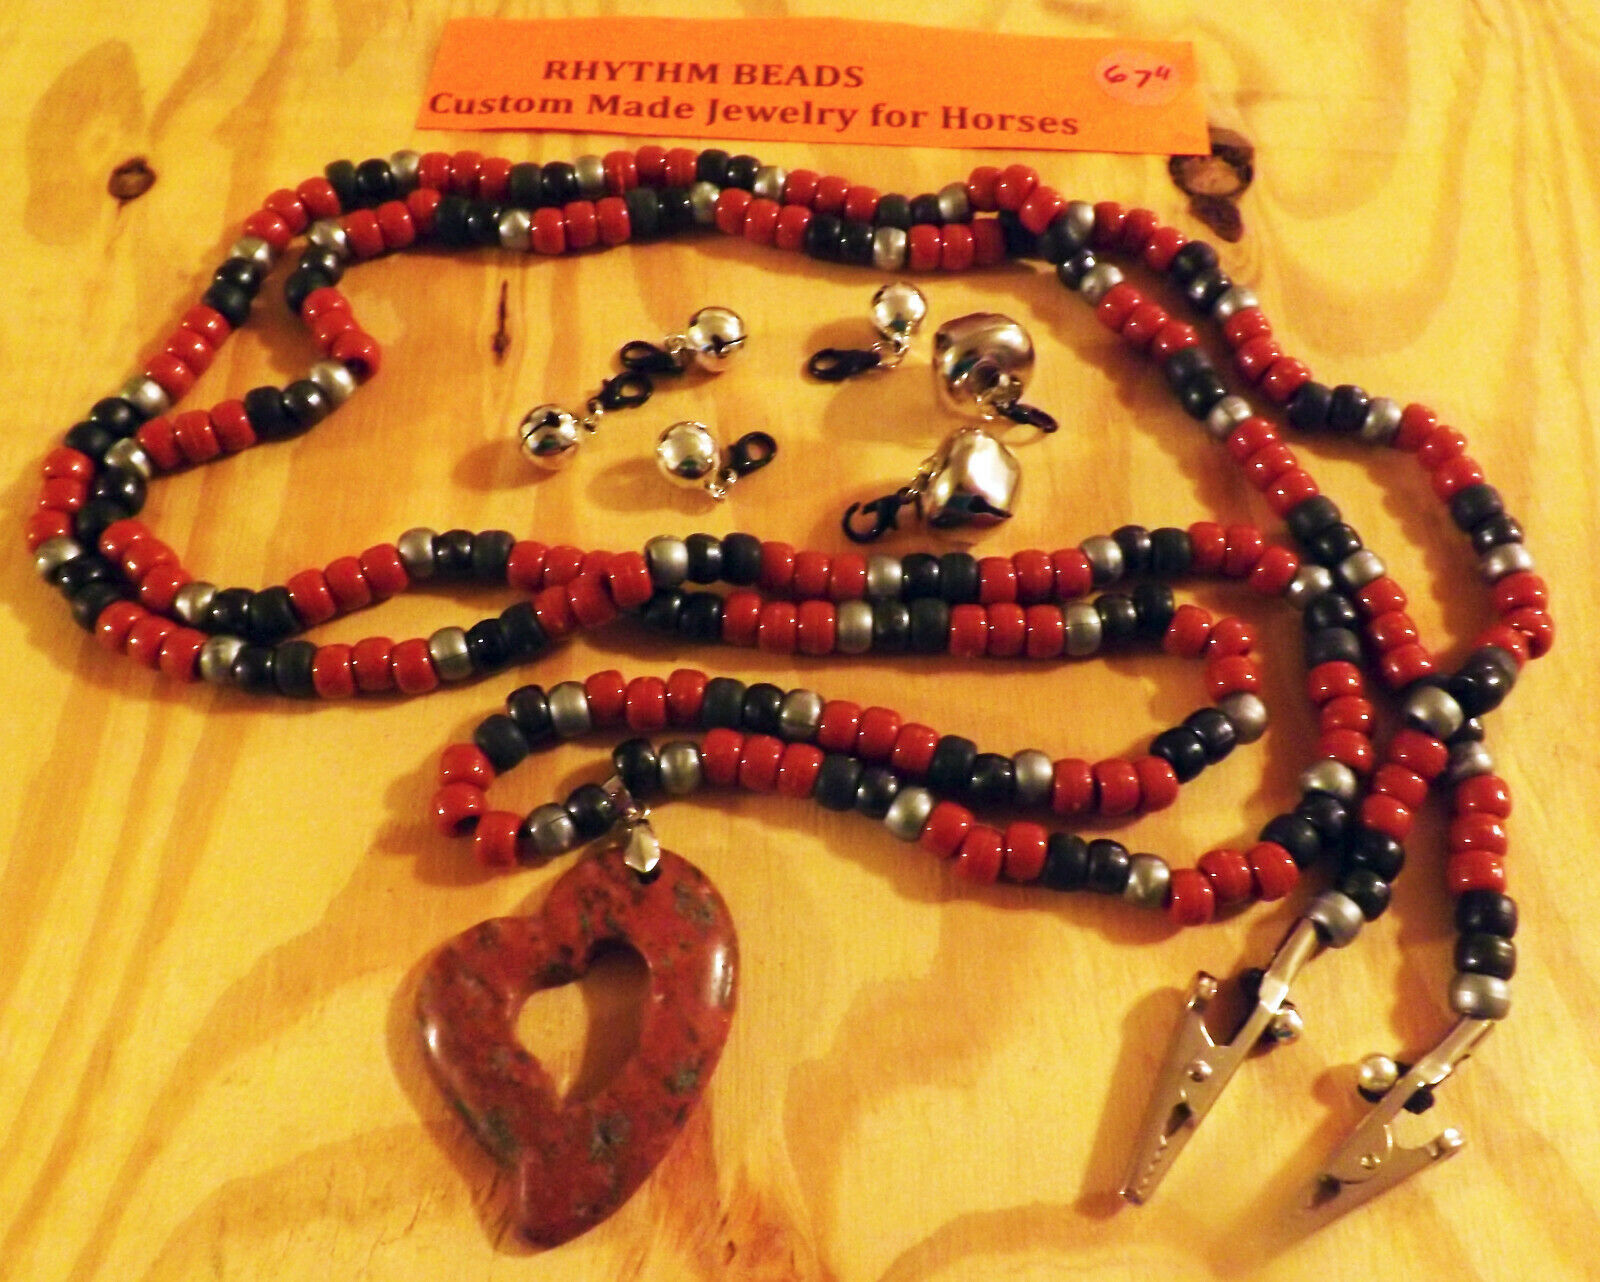 Rhythm Beads For Steeds Jewelry for Horses W Agate Pendant & Detachable Bells